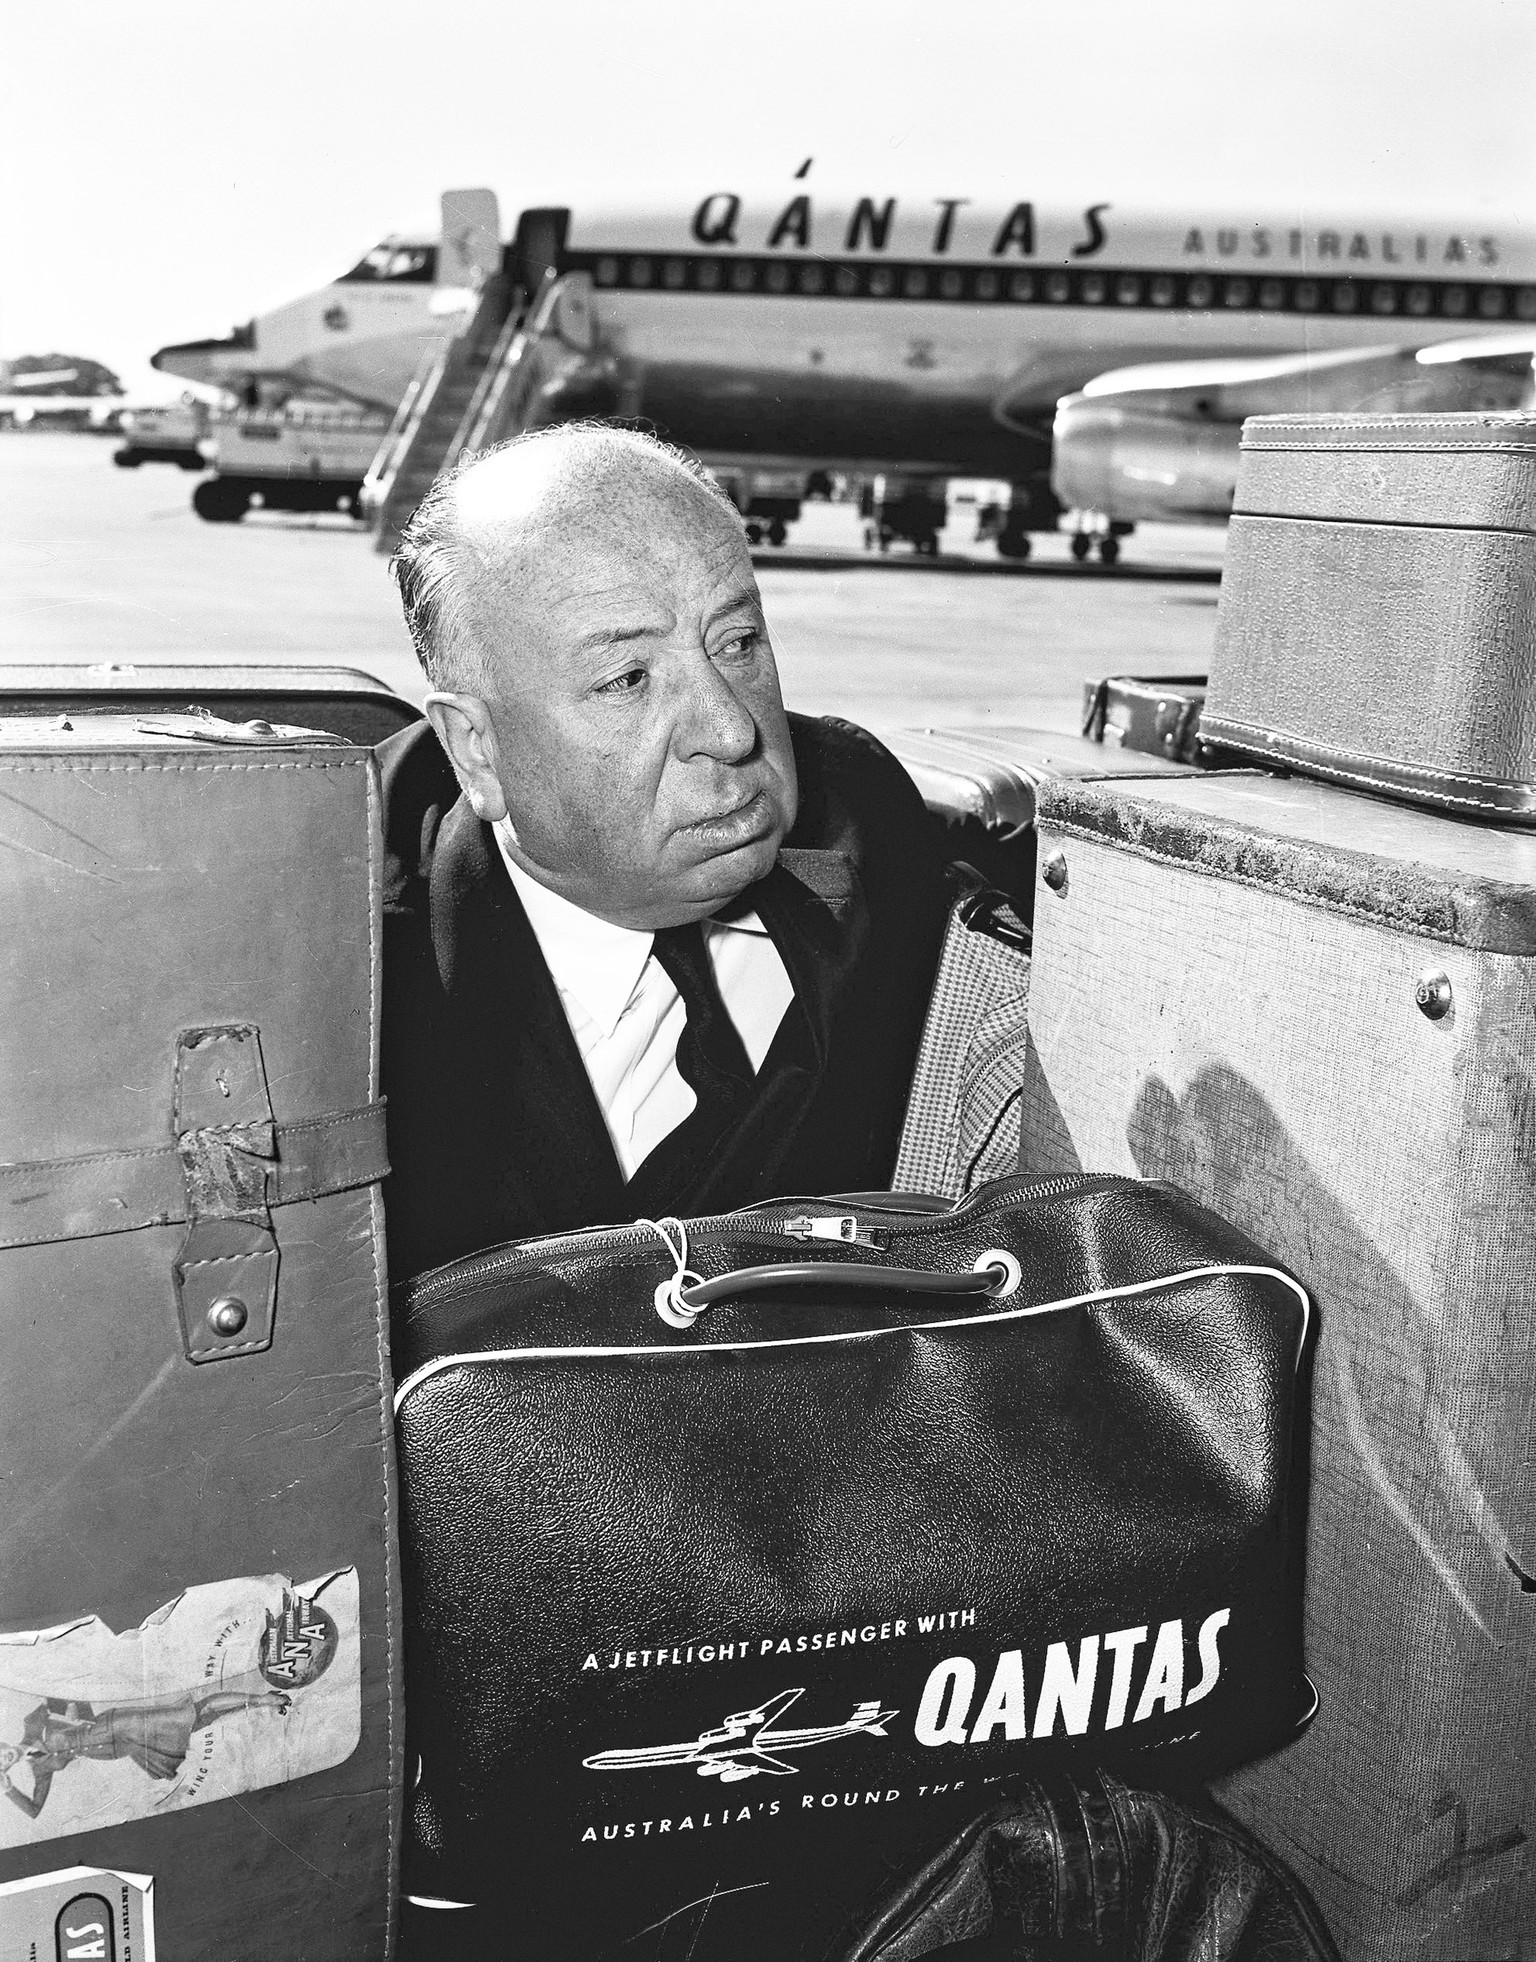 Movie director, Alfred Hitchcock, departs Australia by Qantas at Sydney Airport, 15 May 1960 (Photo by Fairfax Media via Getty Images)